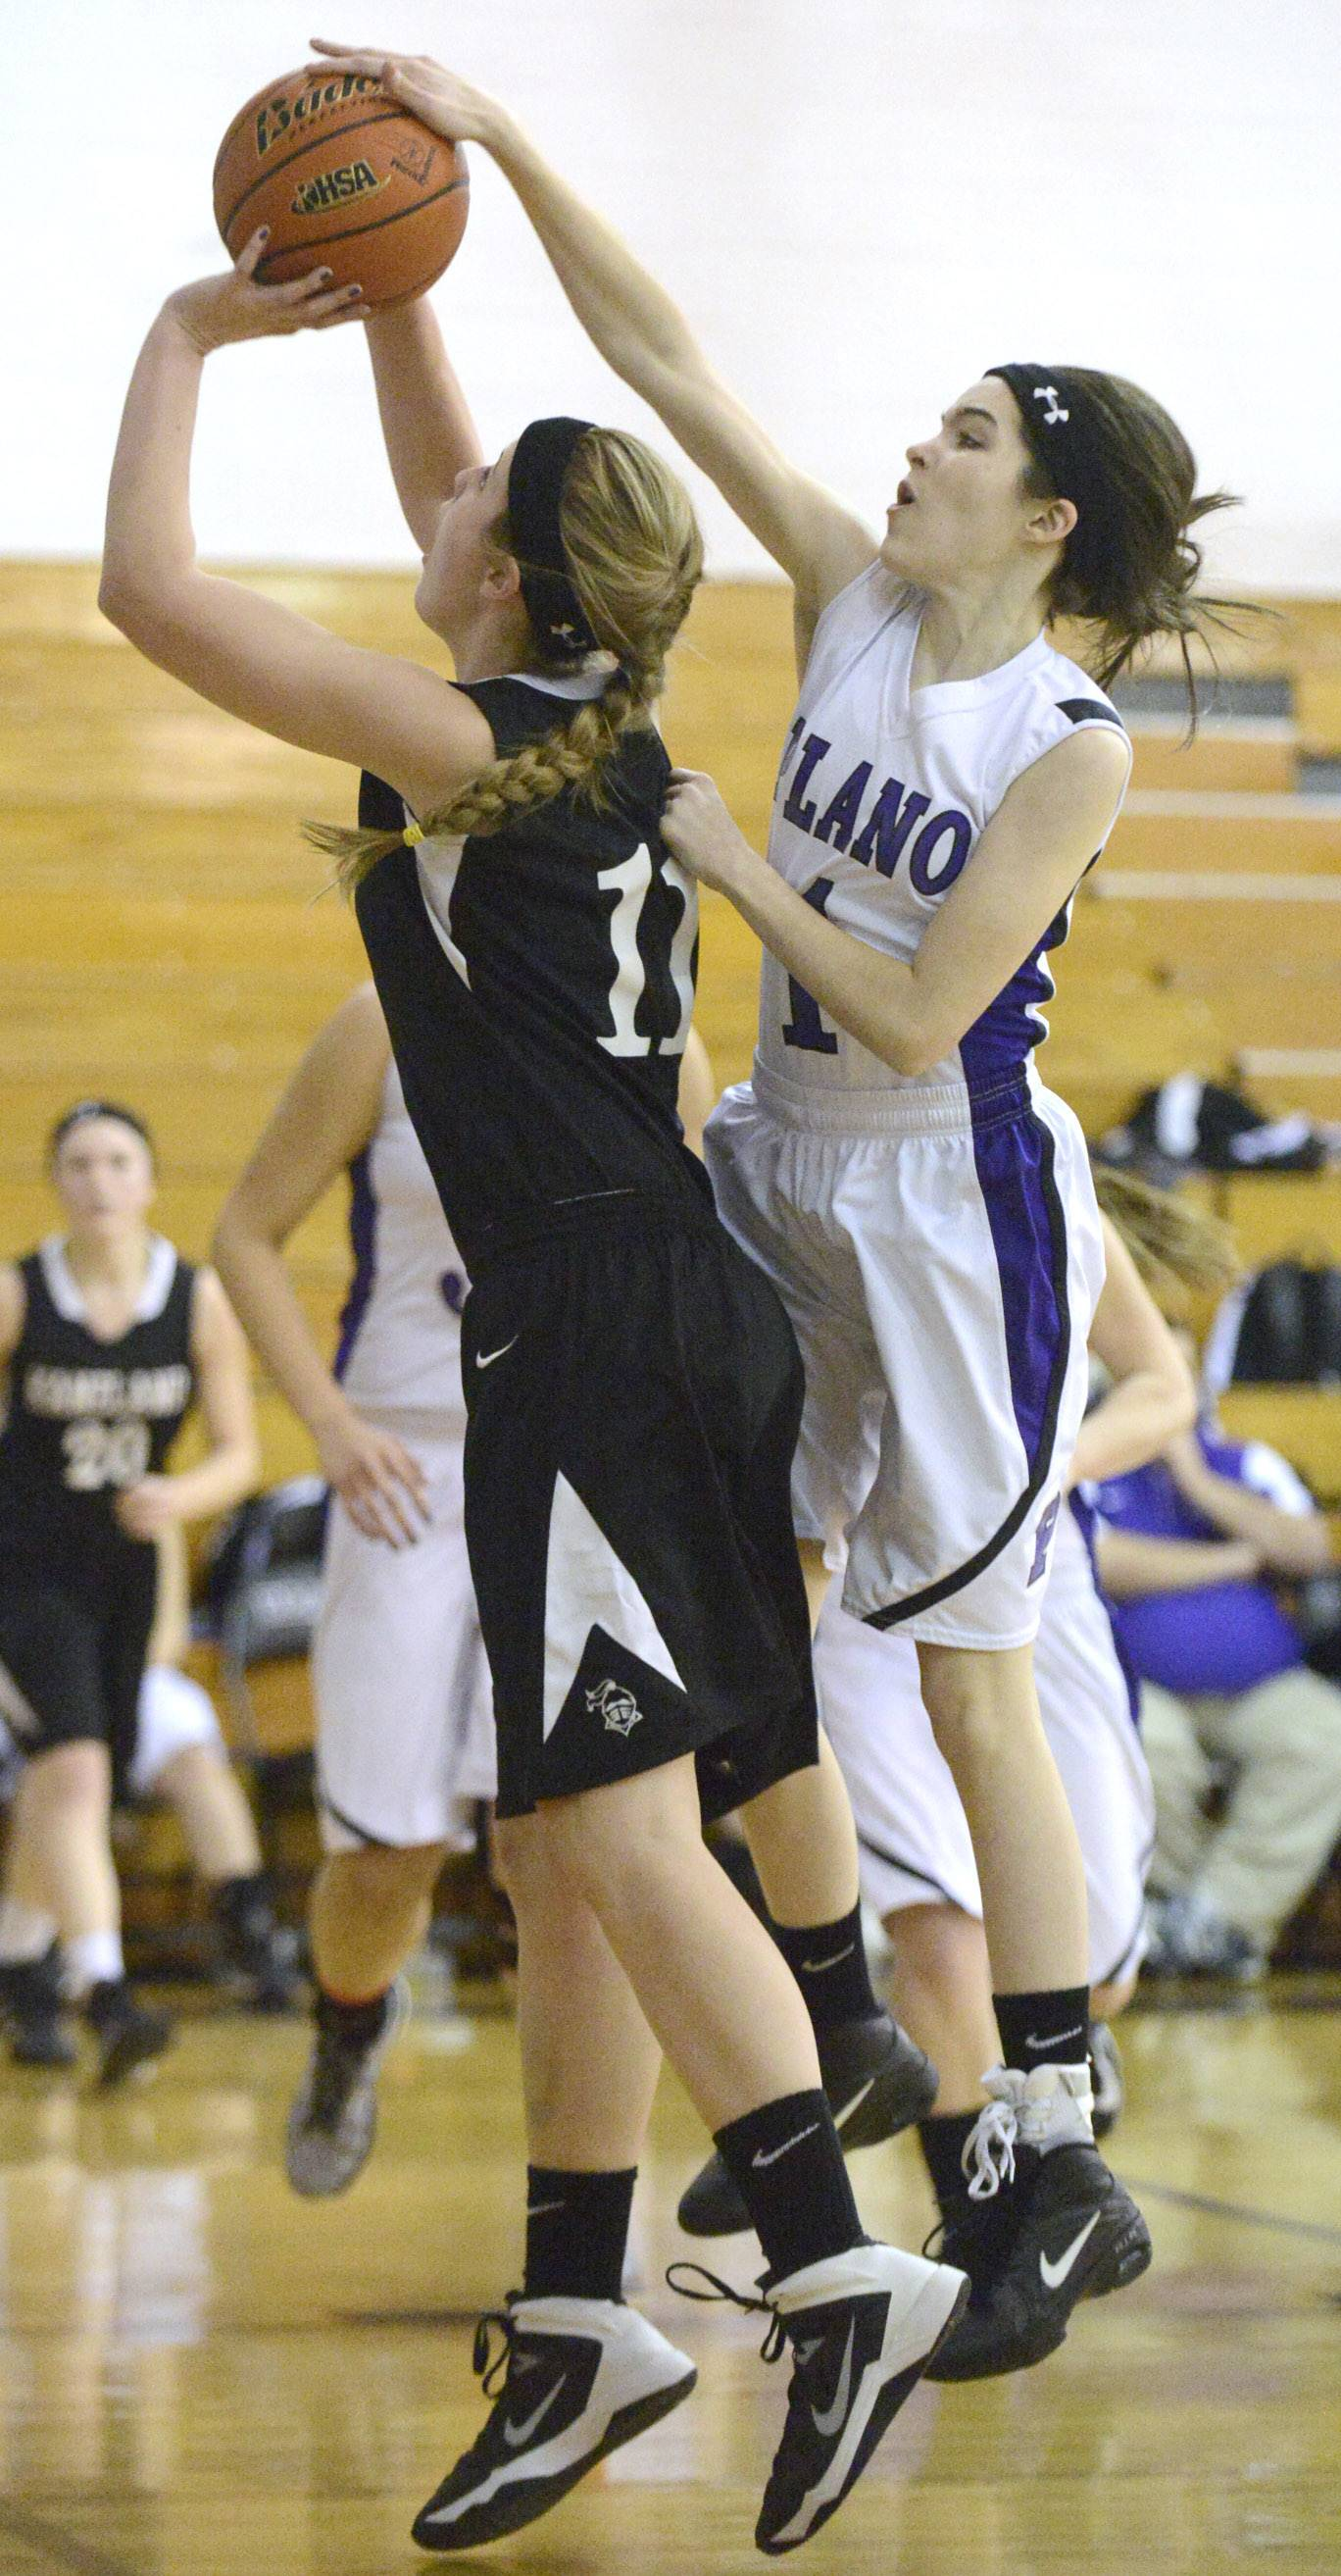 Kaneland's Ally VanBogaert is denied a shot by Plano's Jackie Schane in the second quarter of the Class 3A regional meet on Wednesday, February 19.